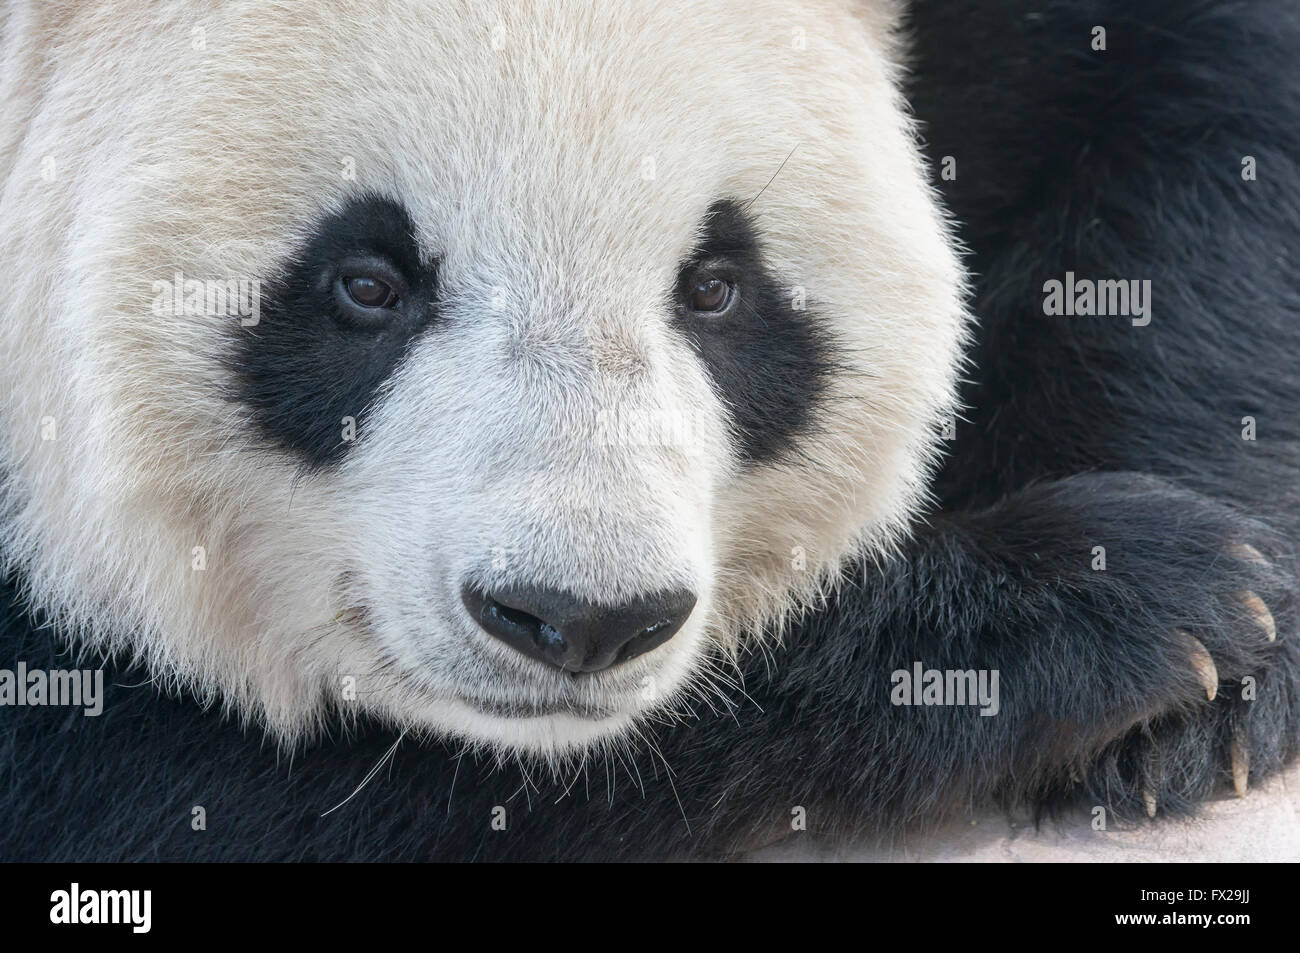 Adult Giant Panda (Ailuropoda melanoleuca), China Conservation and Research Centre for the Giant Pandas, Chengdu, - Stock Image